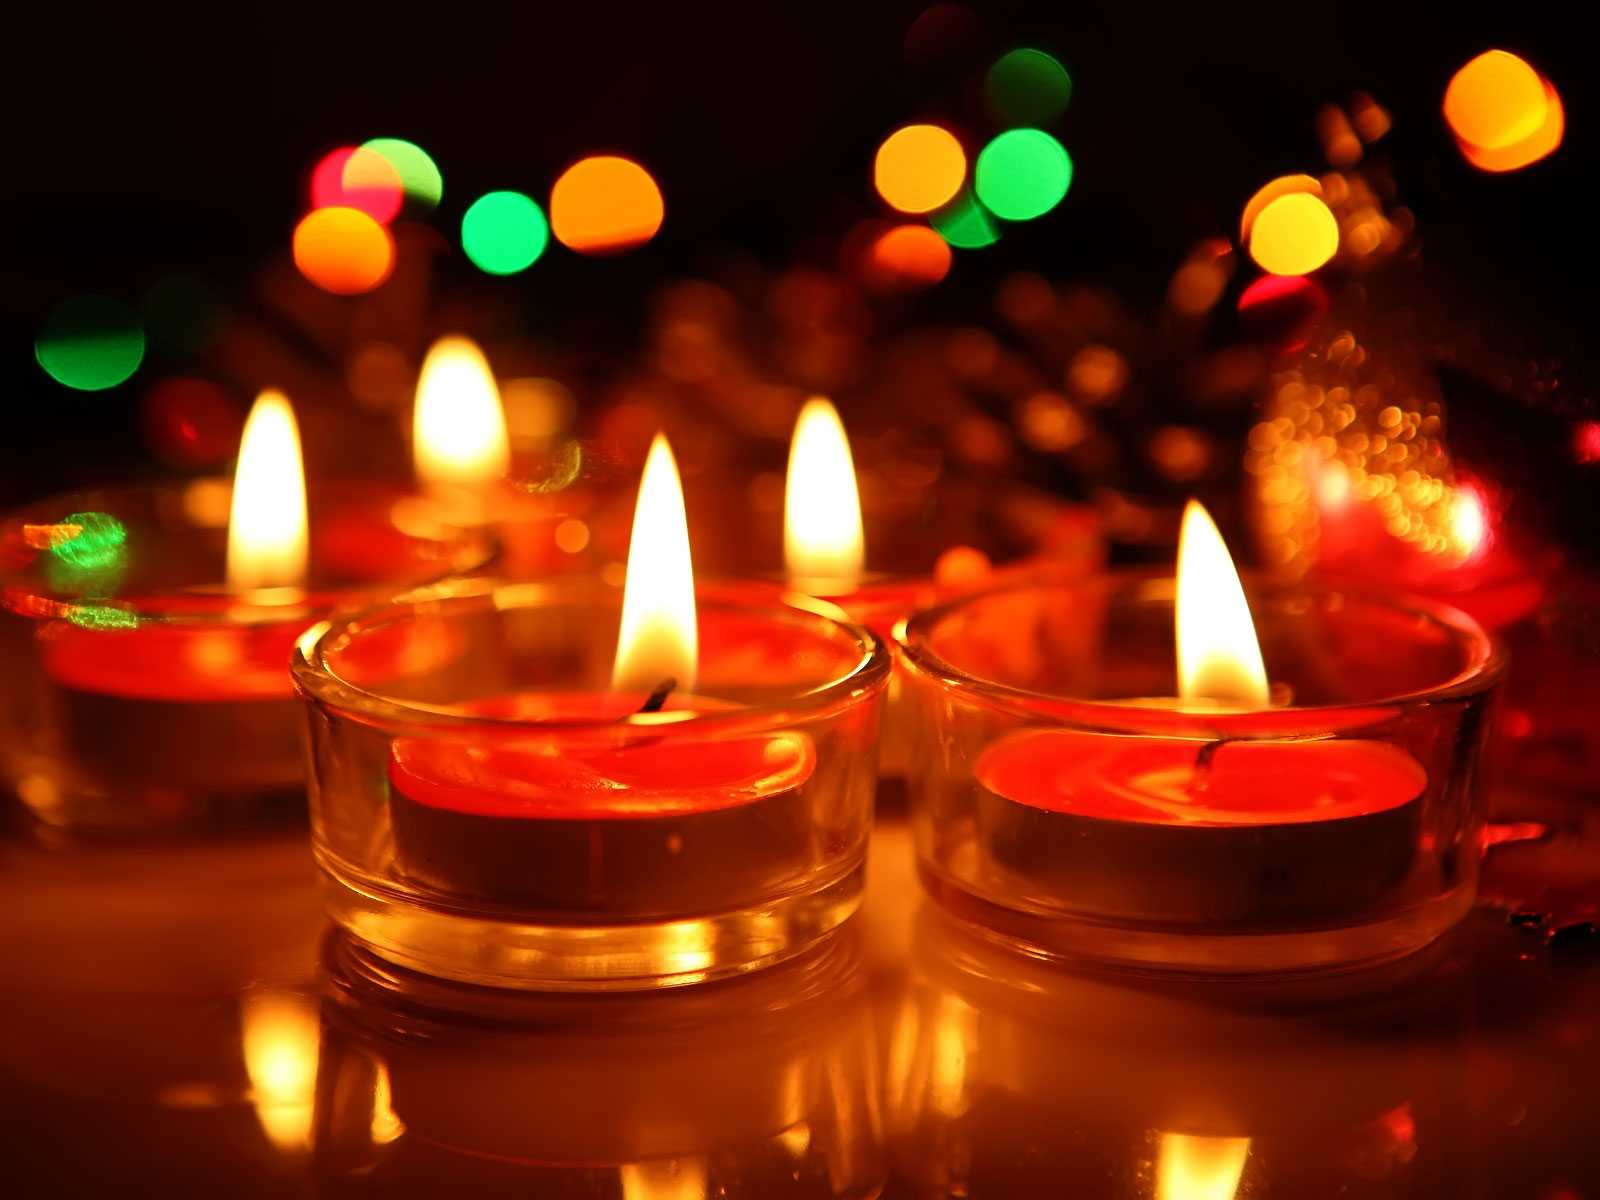 What is diwali and why is it celebrated?: